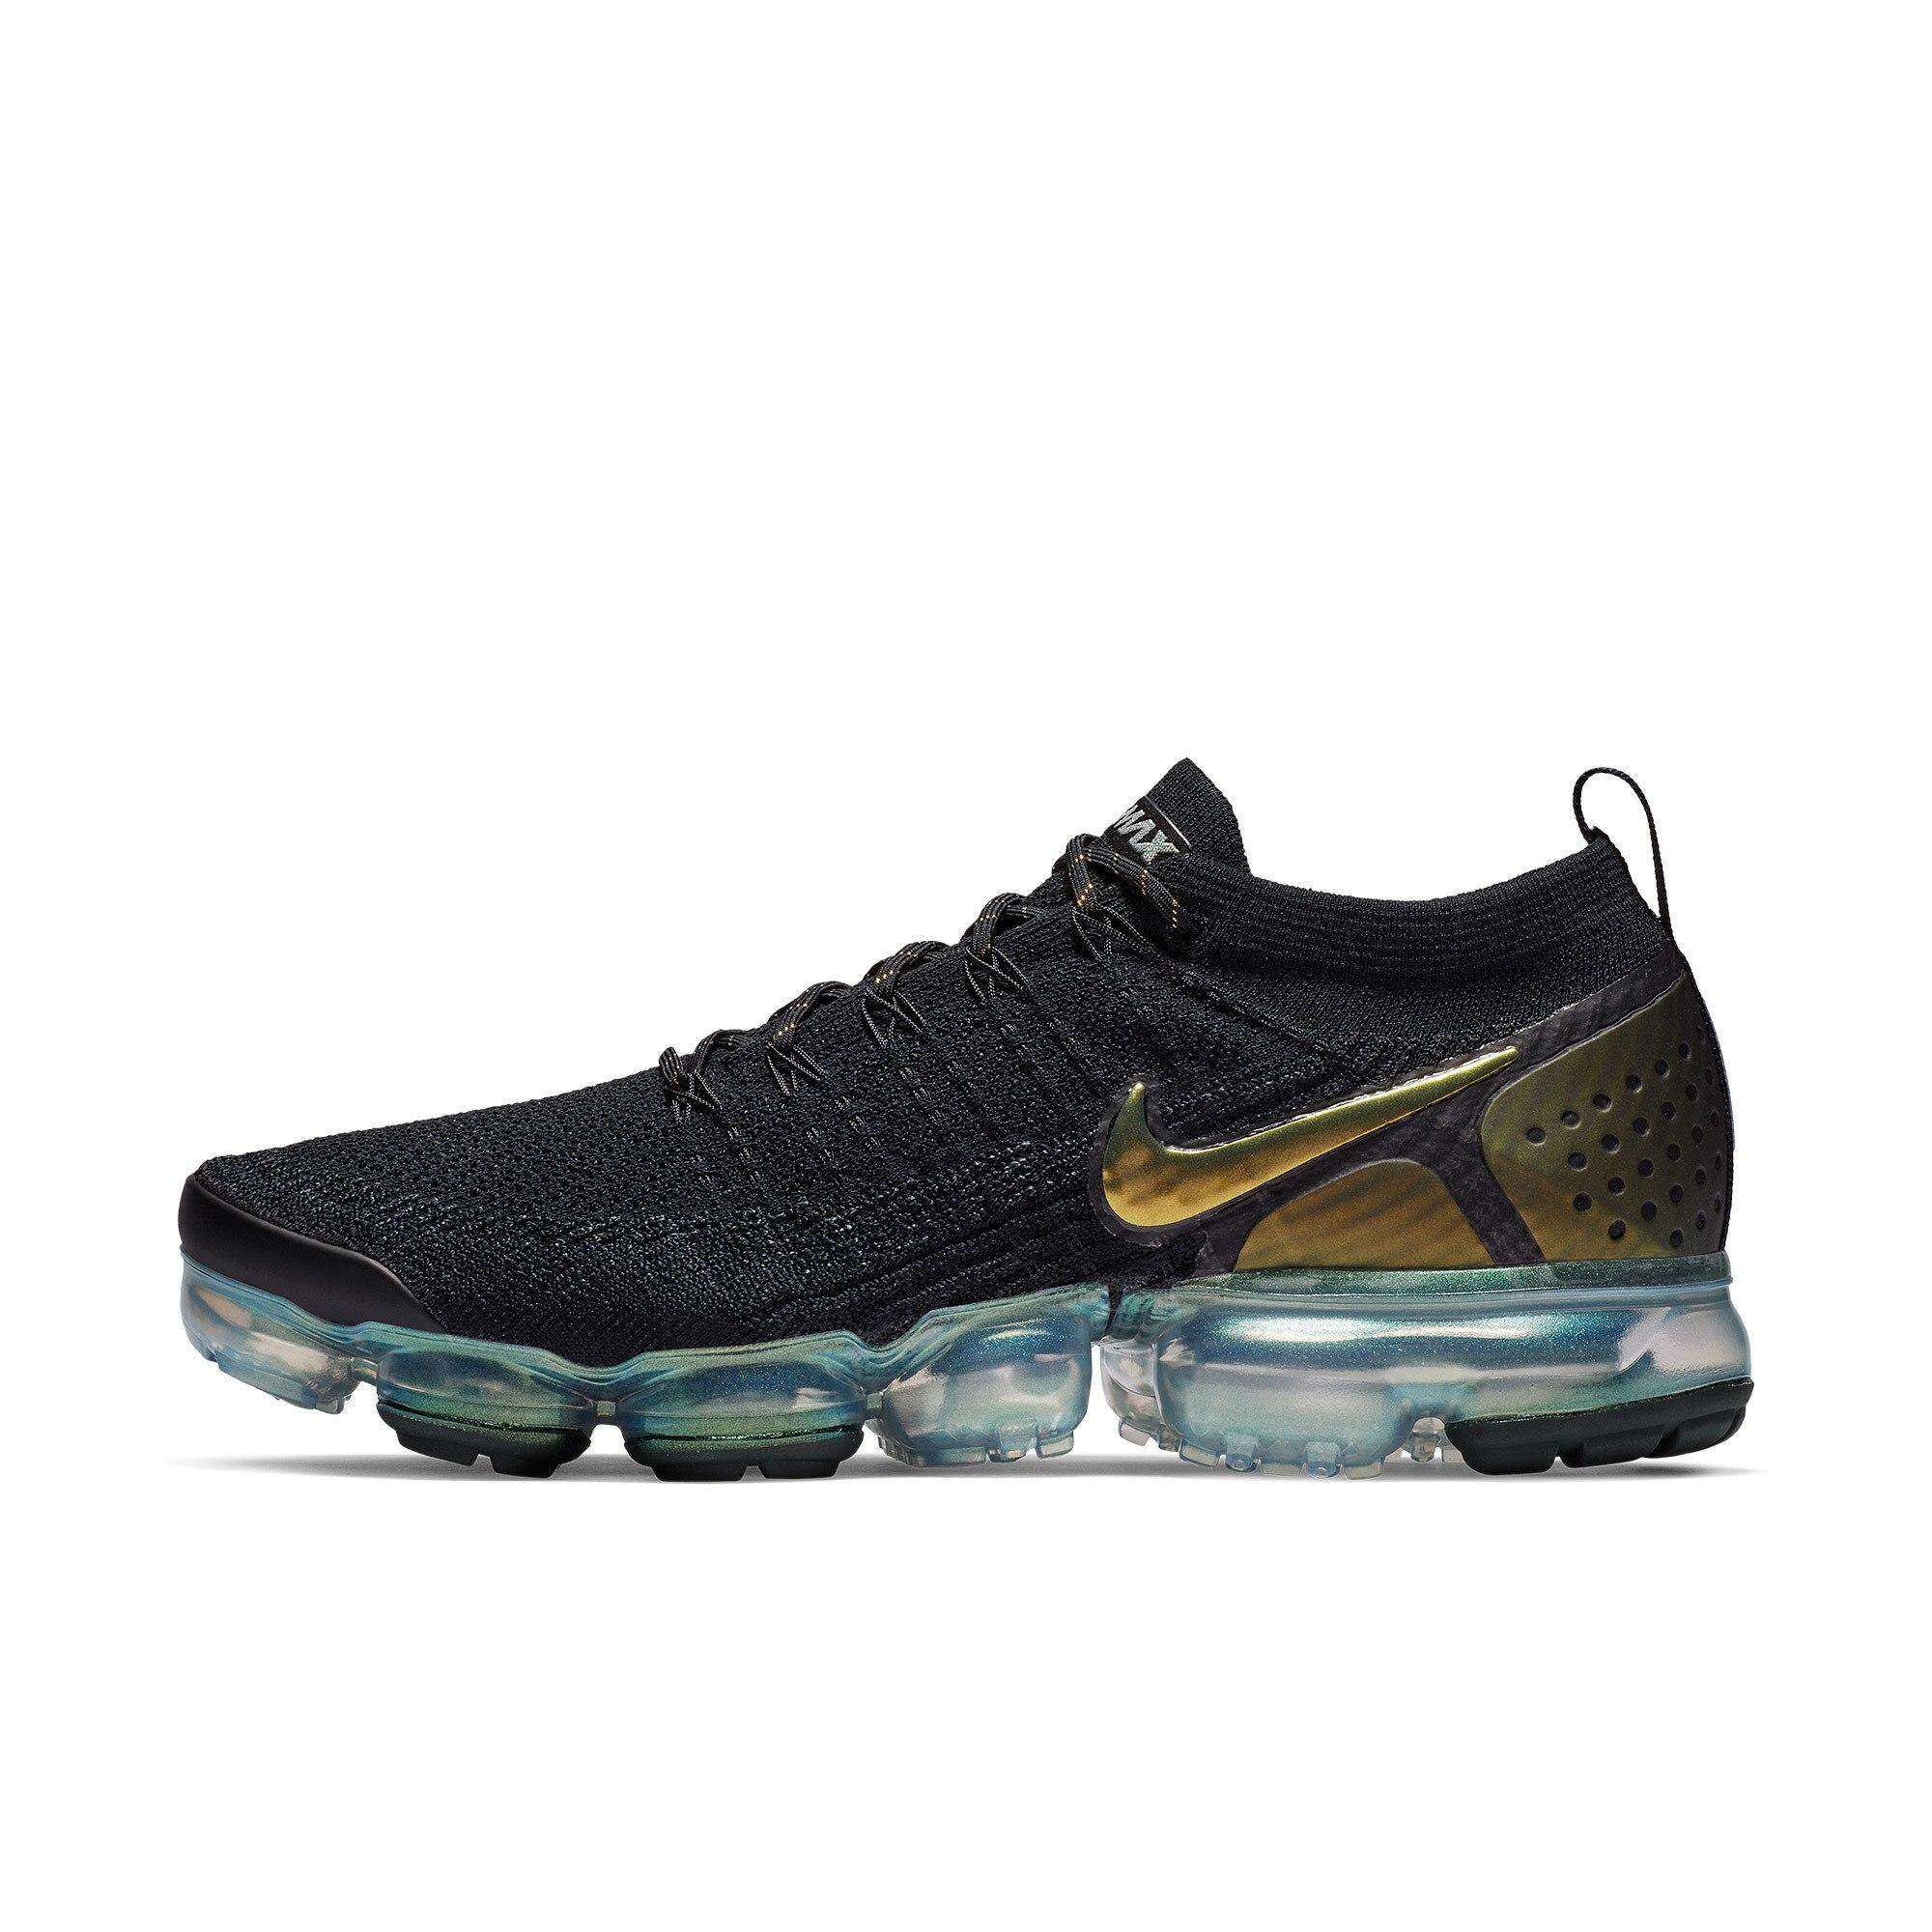 outlet store f96db 36fa2 Nike Air Vapormax Flyknit 2 Man Air Cushion Sneakers Shock Absorption Lithe  Sneakers